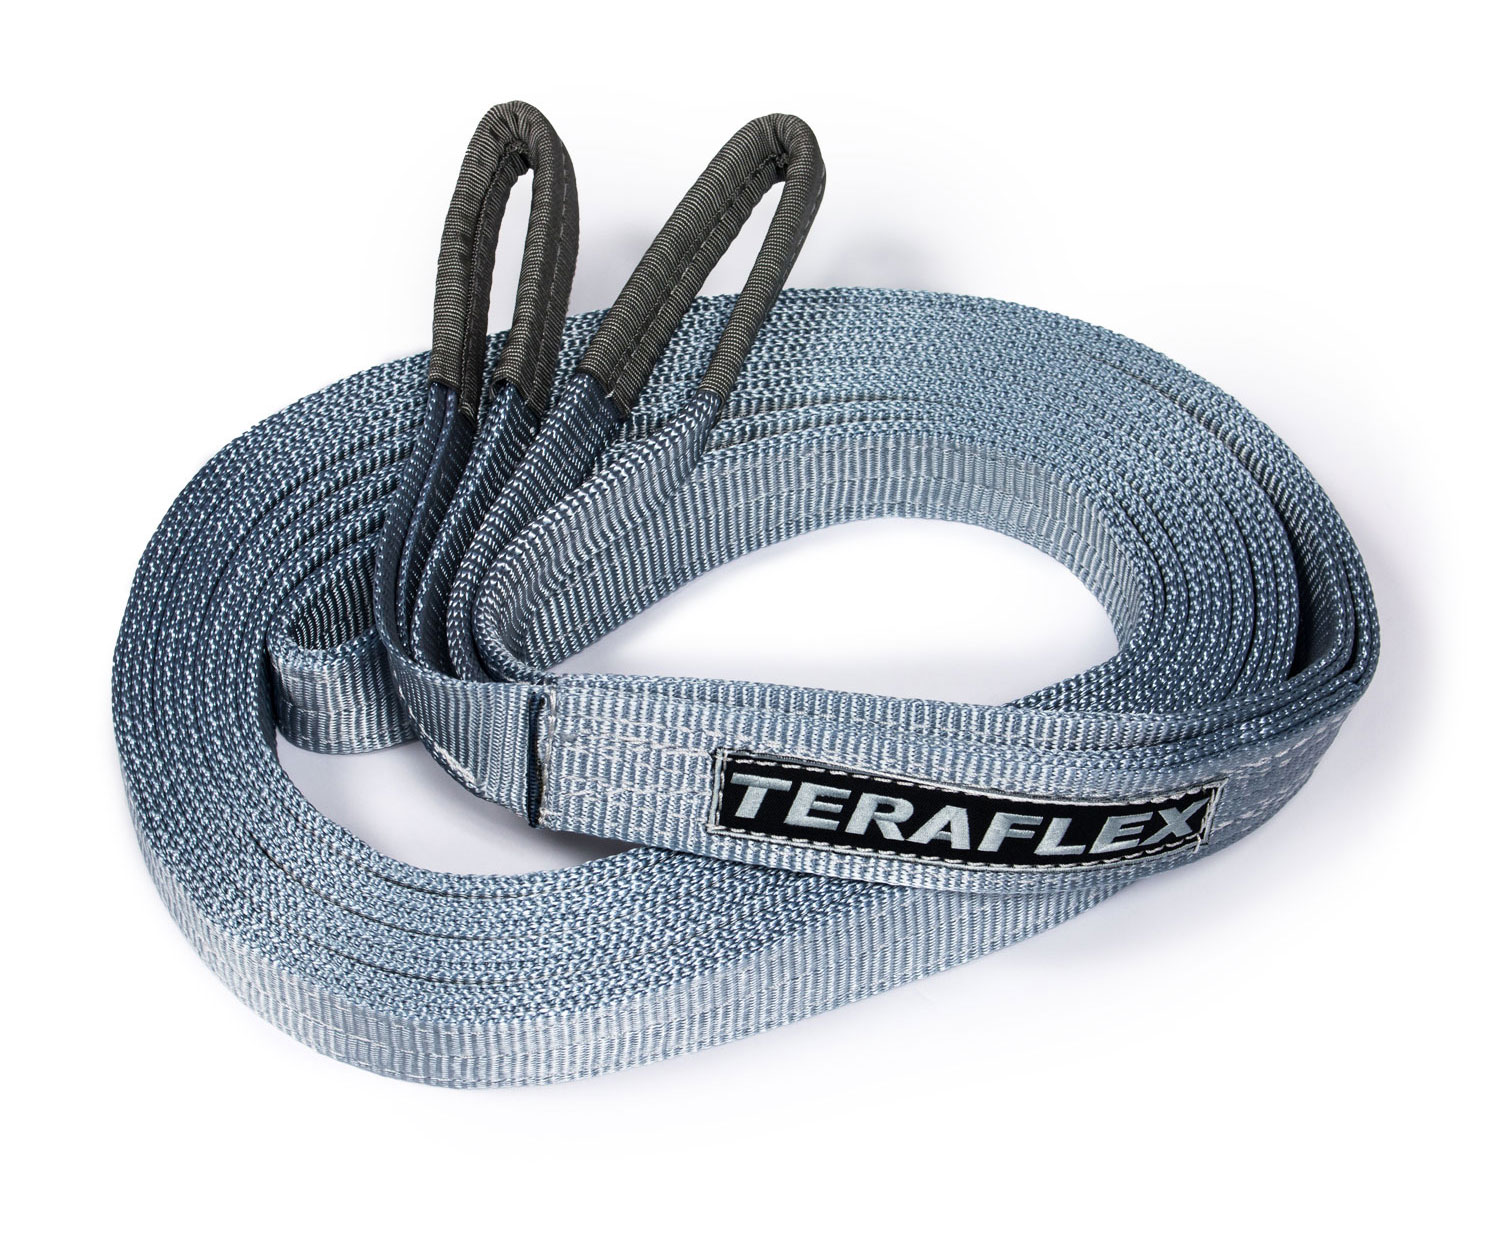 Teraflex 30ft x 2in Tow Strap